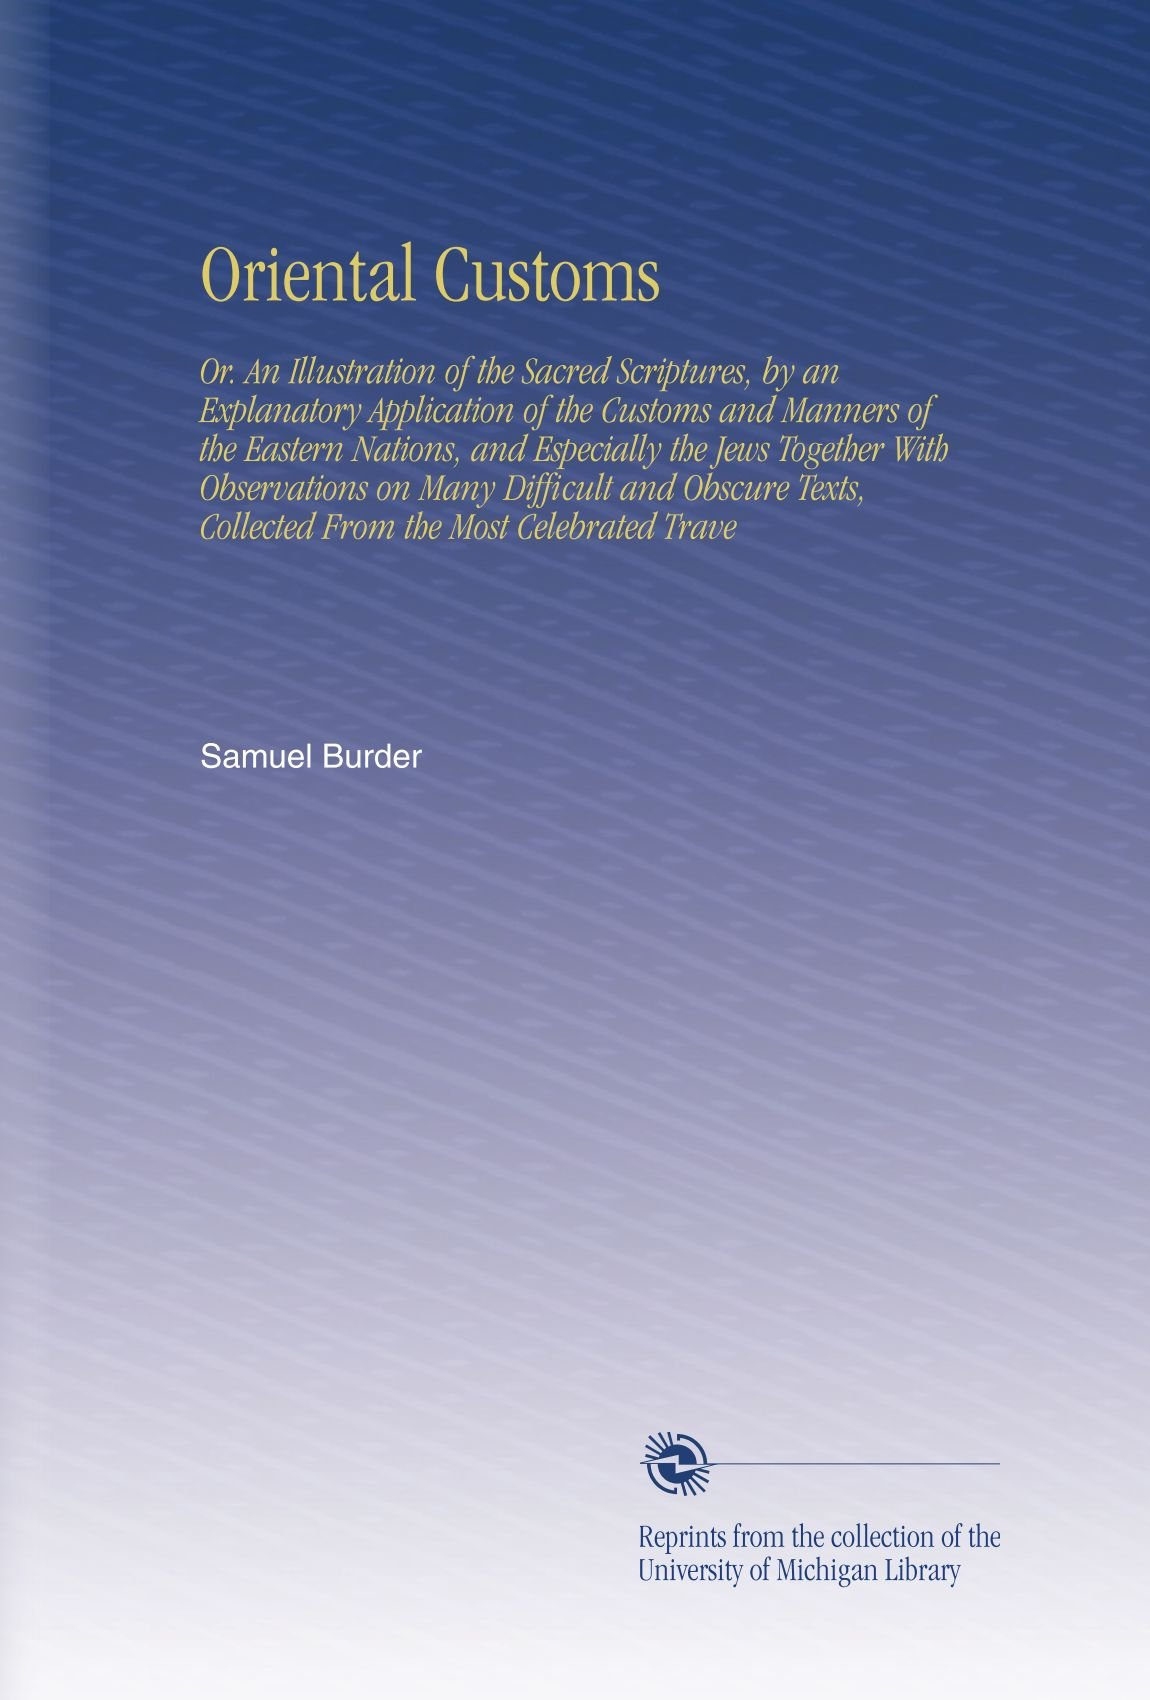 Oriental Customs: Or. An Illustration of the Sacred Scriptures, by an Explanatory Application of the Customs and Manners of the Eastern Nations, and ... Collected From the Most Celebrated Trave pdf epub